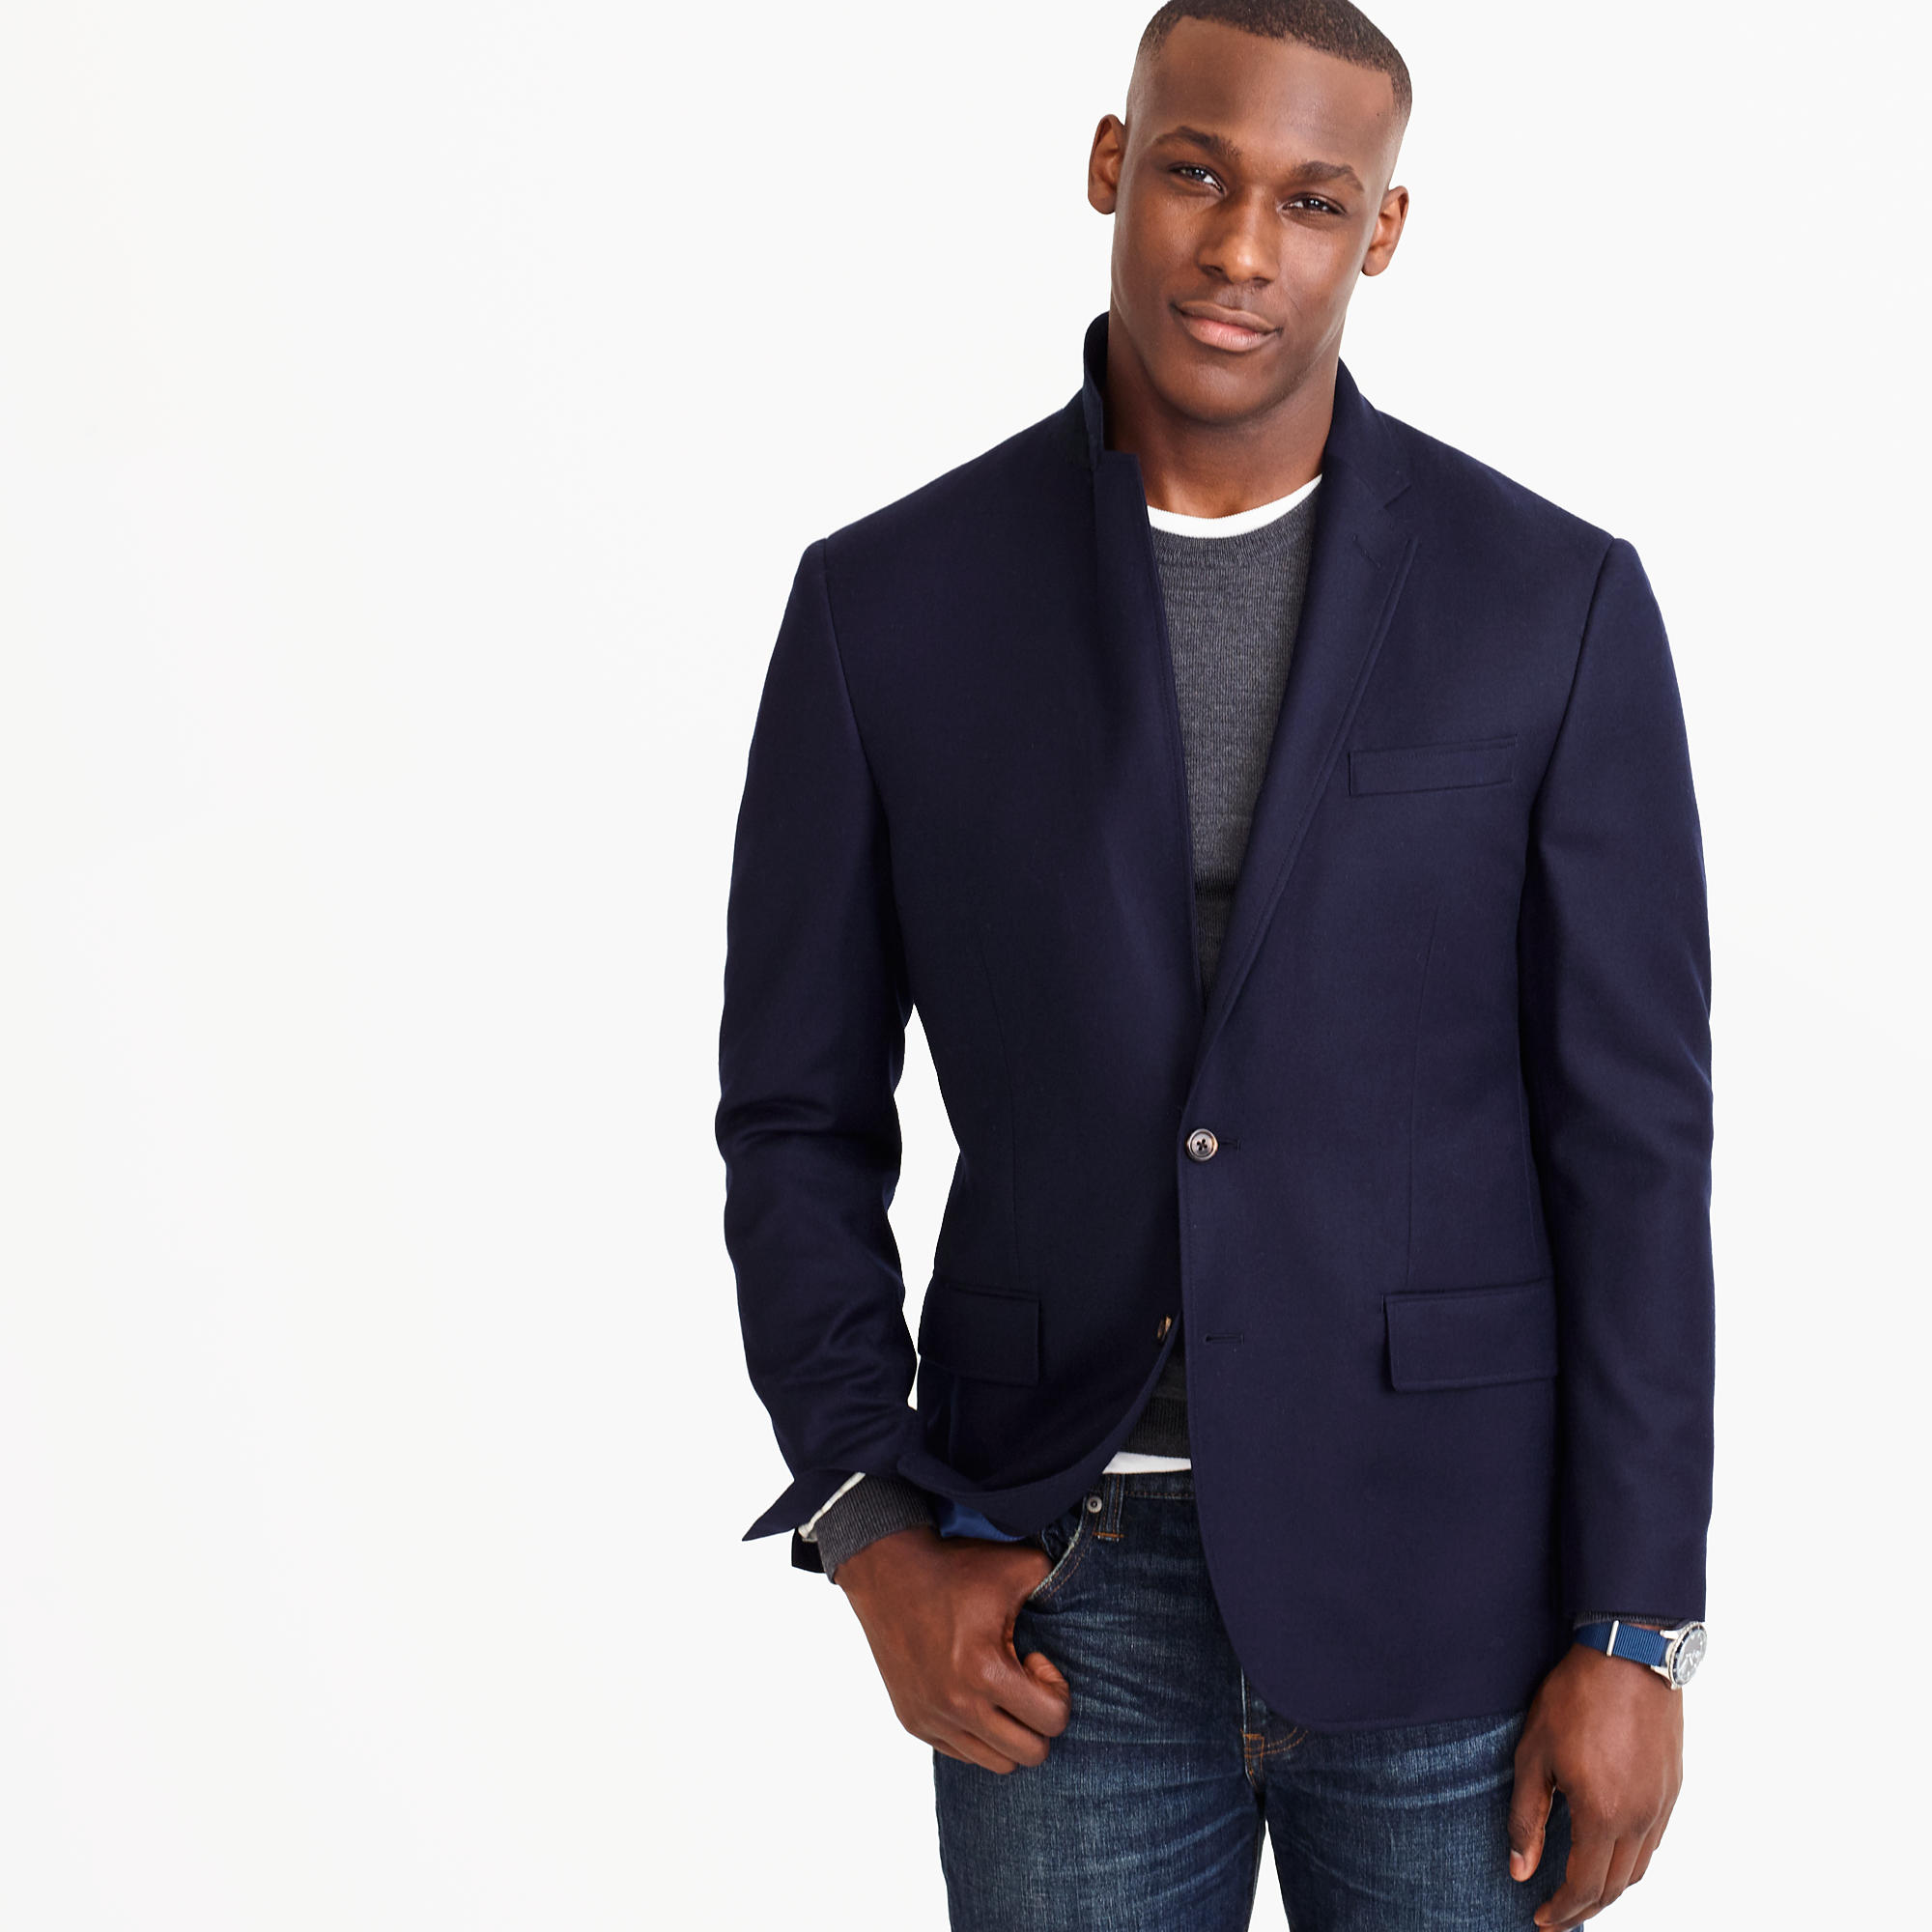 For more than 40 years, Men's Wearhouse has been supplying men with high-quality, affordable clothing, including designer suits, dress shirts, sport coats, tuxedo rentals, Big & Location: Macarthur Park Suite , Irving, TX